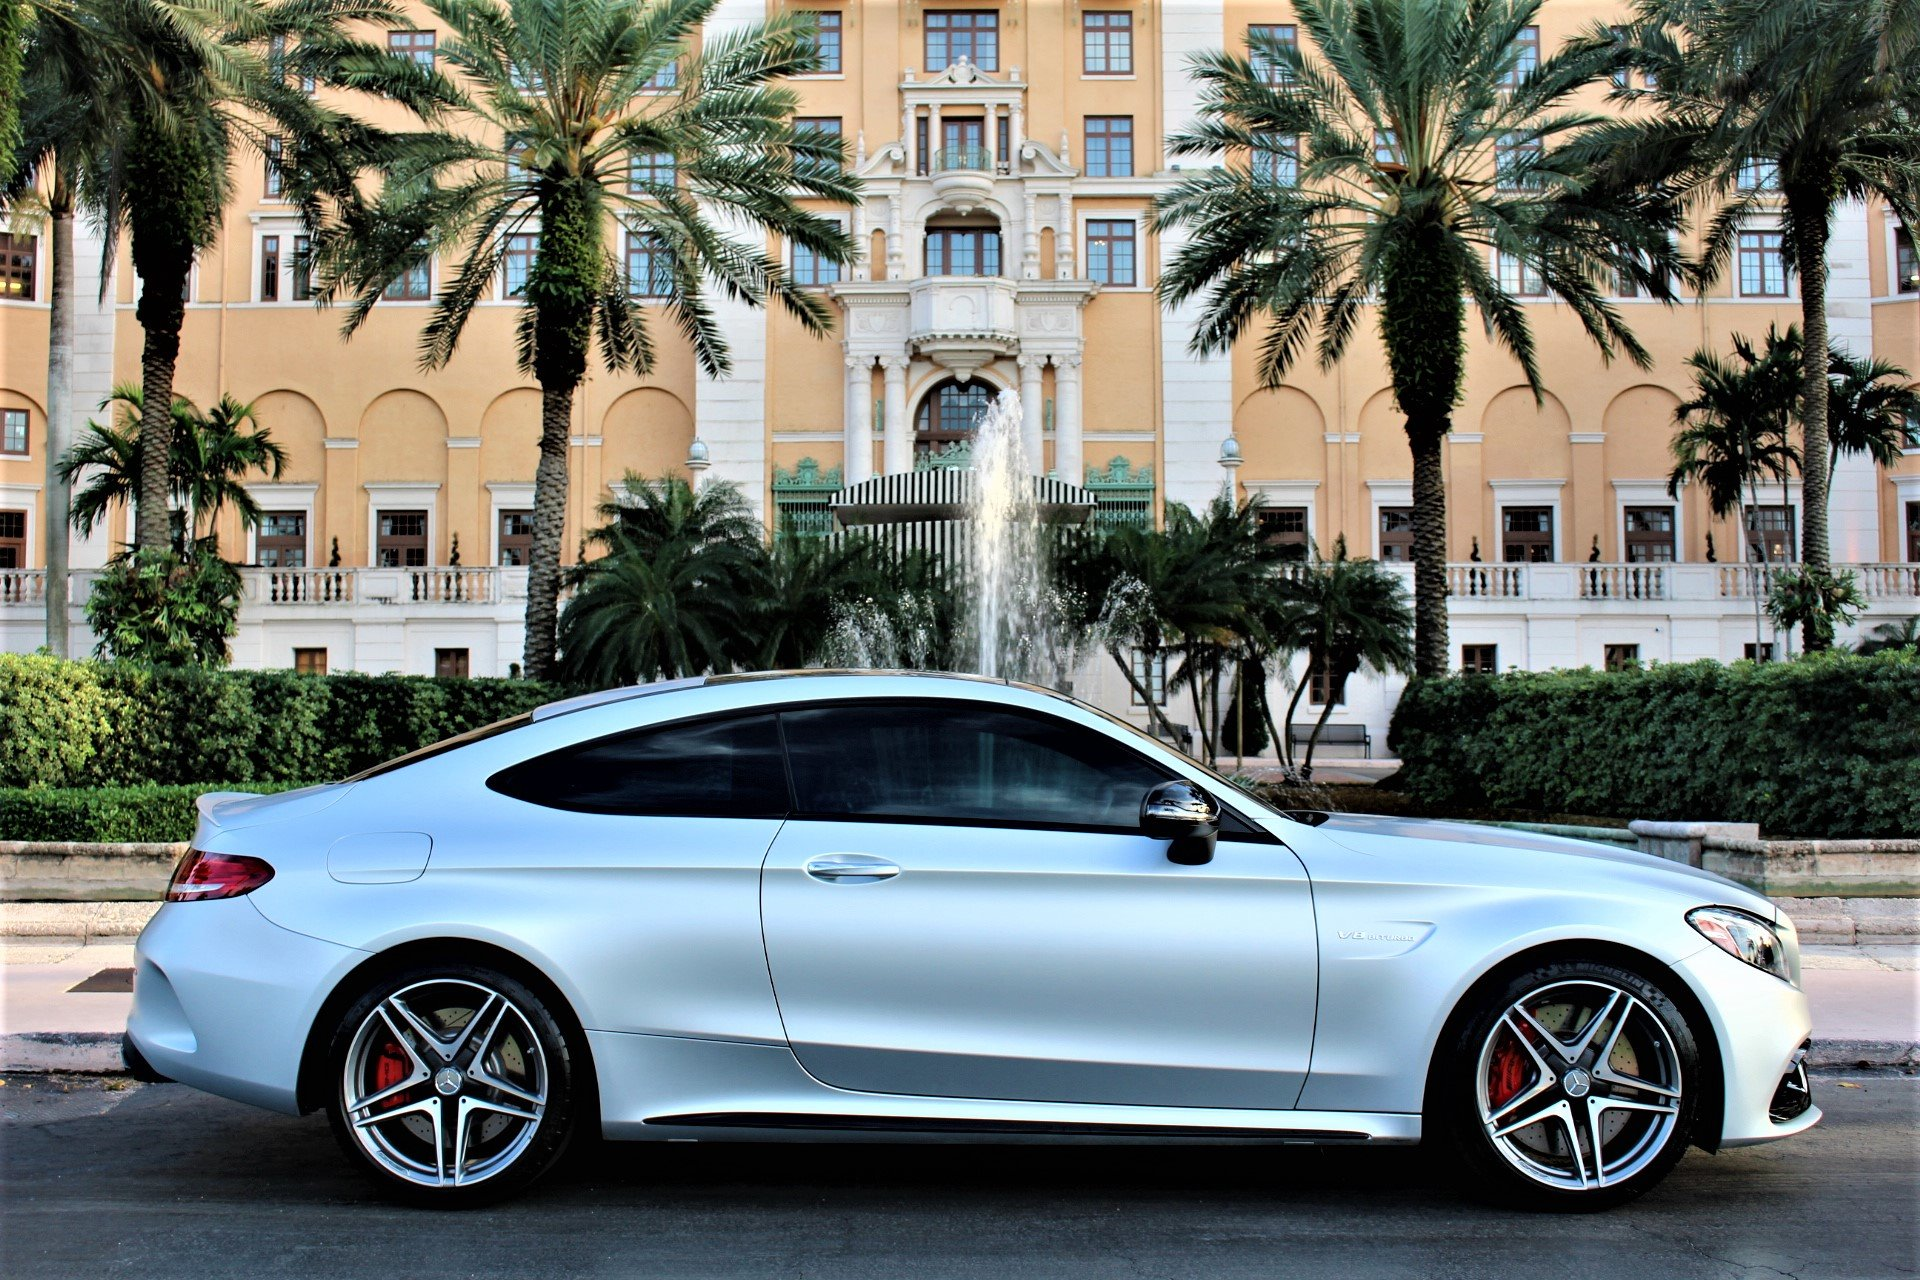 Used 2018 Mercedes-Benz C-Class AMG C 63 S for sale Sold at The Gables Sports Cars in Miami FL 33146 1